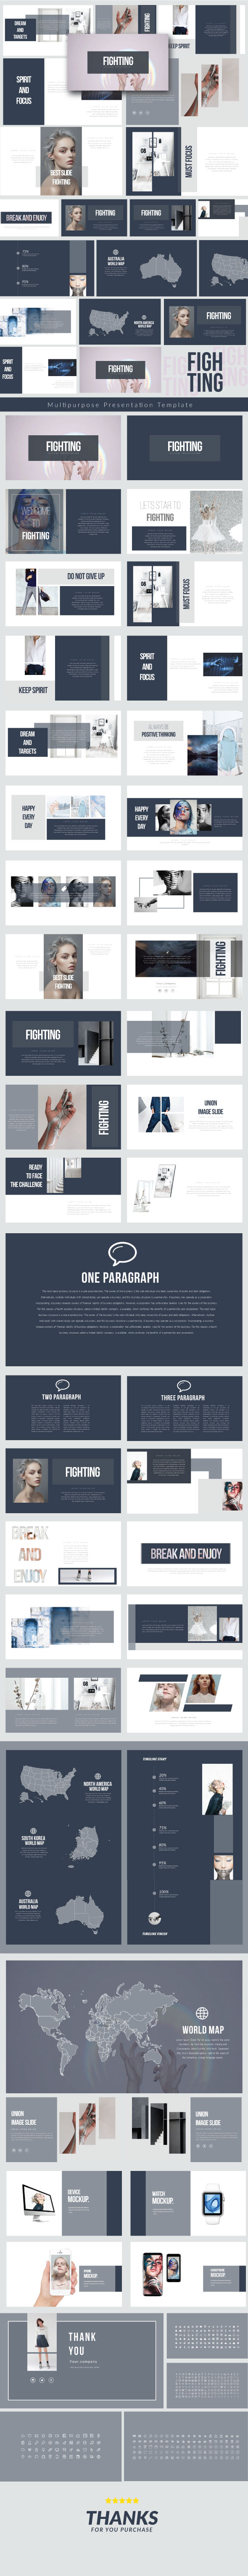 Fighting - Keynote Presentation Templates - Keynote Templates Presentation Templates